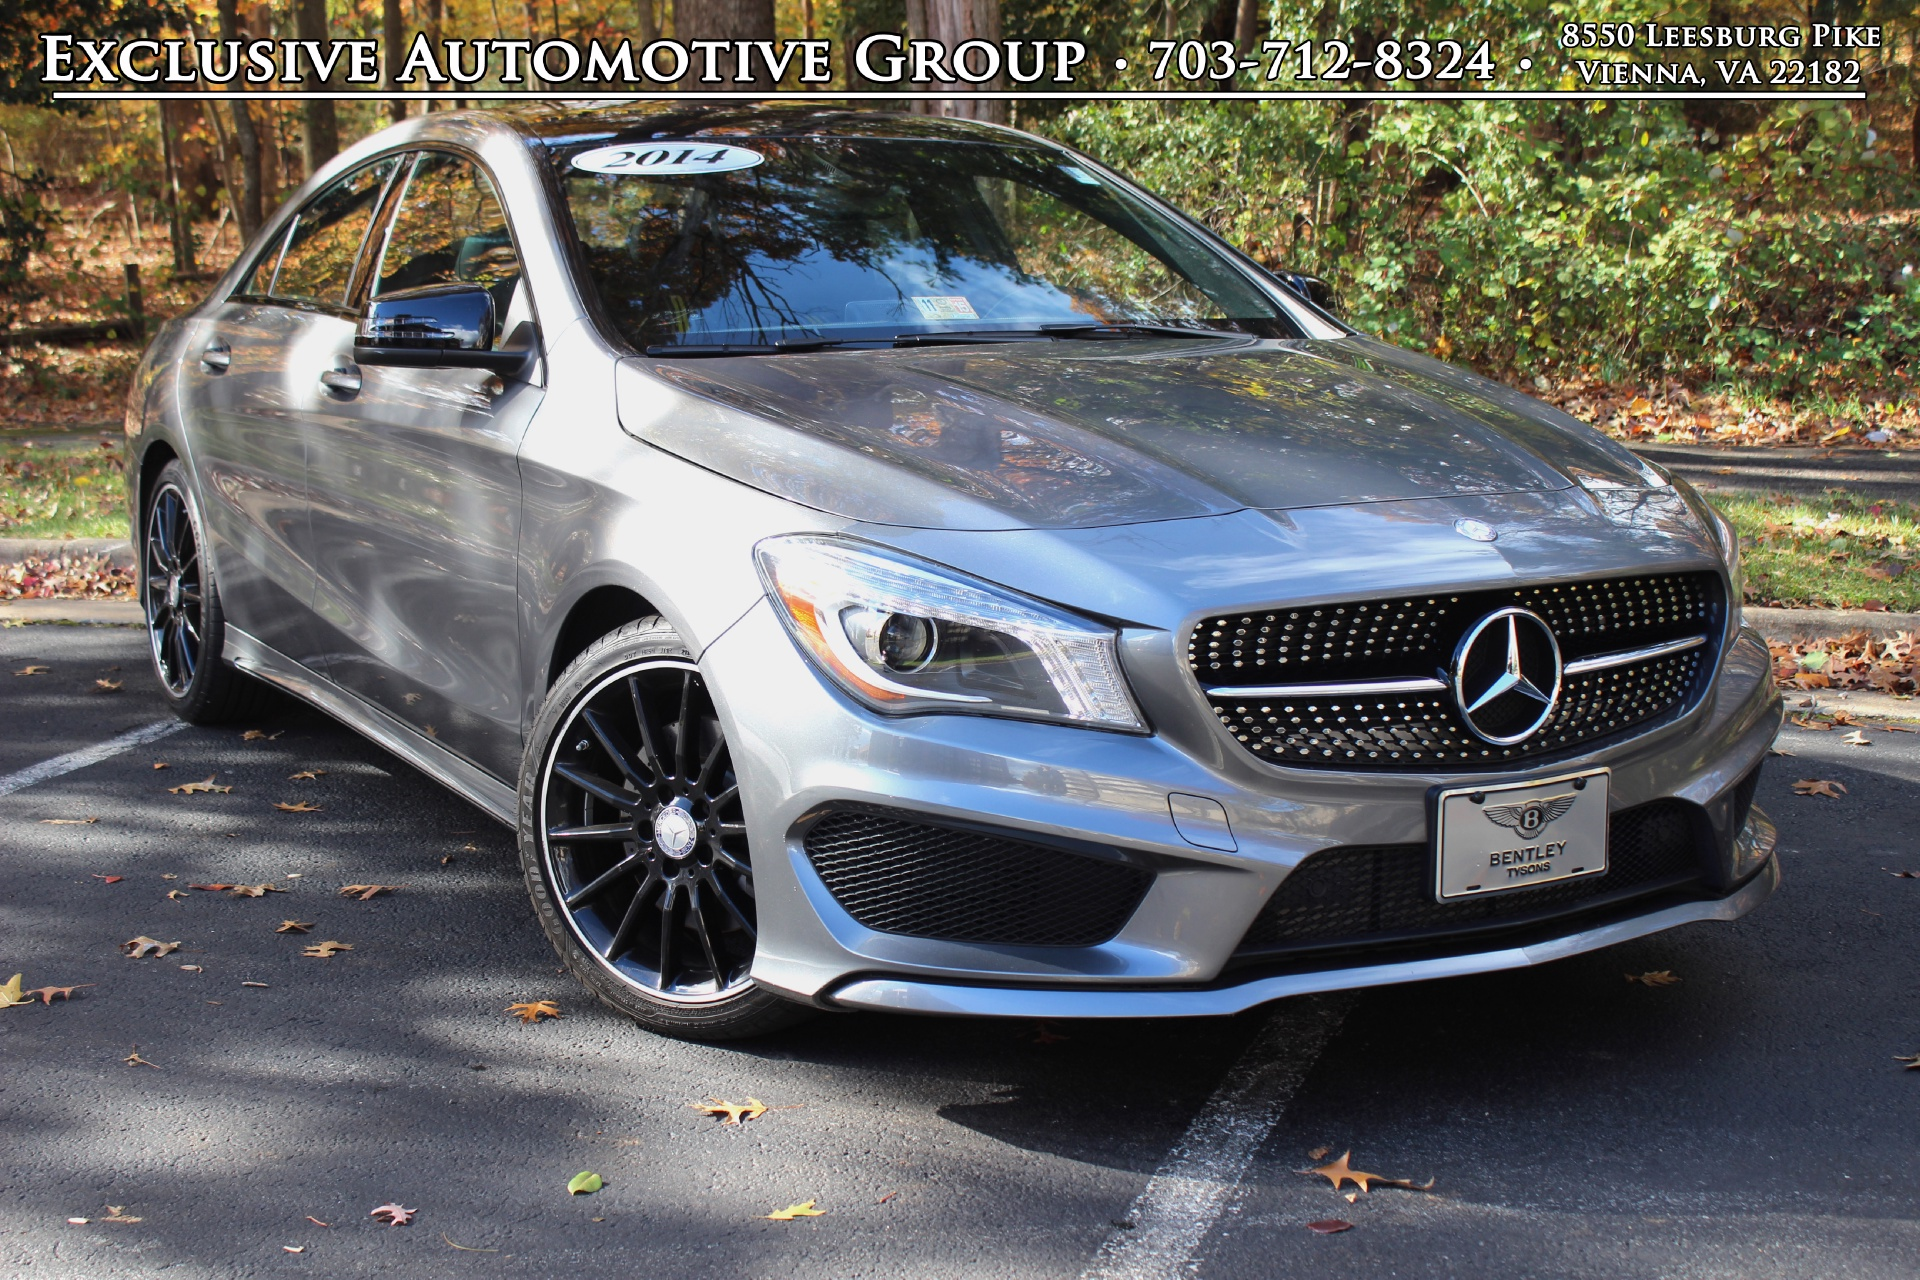 2014 mercedes benz cla class sport stock p029621 for for Mercedes benz dealer in va